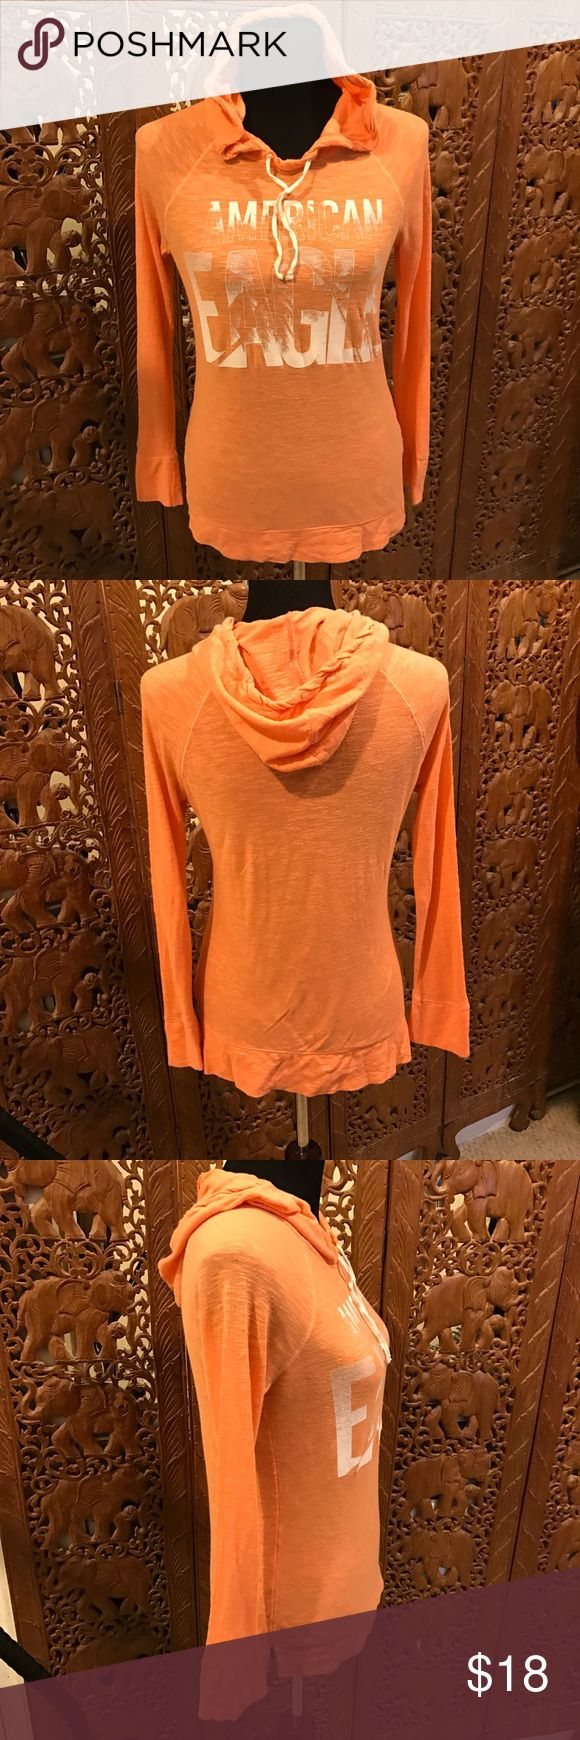 AE Orange Pullover Tee w/Hoodie Pullover Teeshirt material with hoodie. No stains or rips. American Eagle Outfitters Tops Tees - Long Sleeve